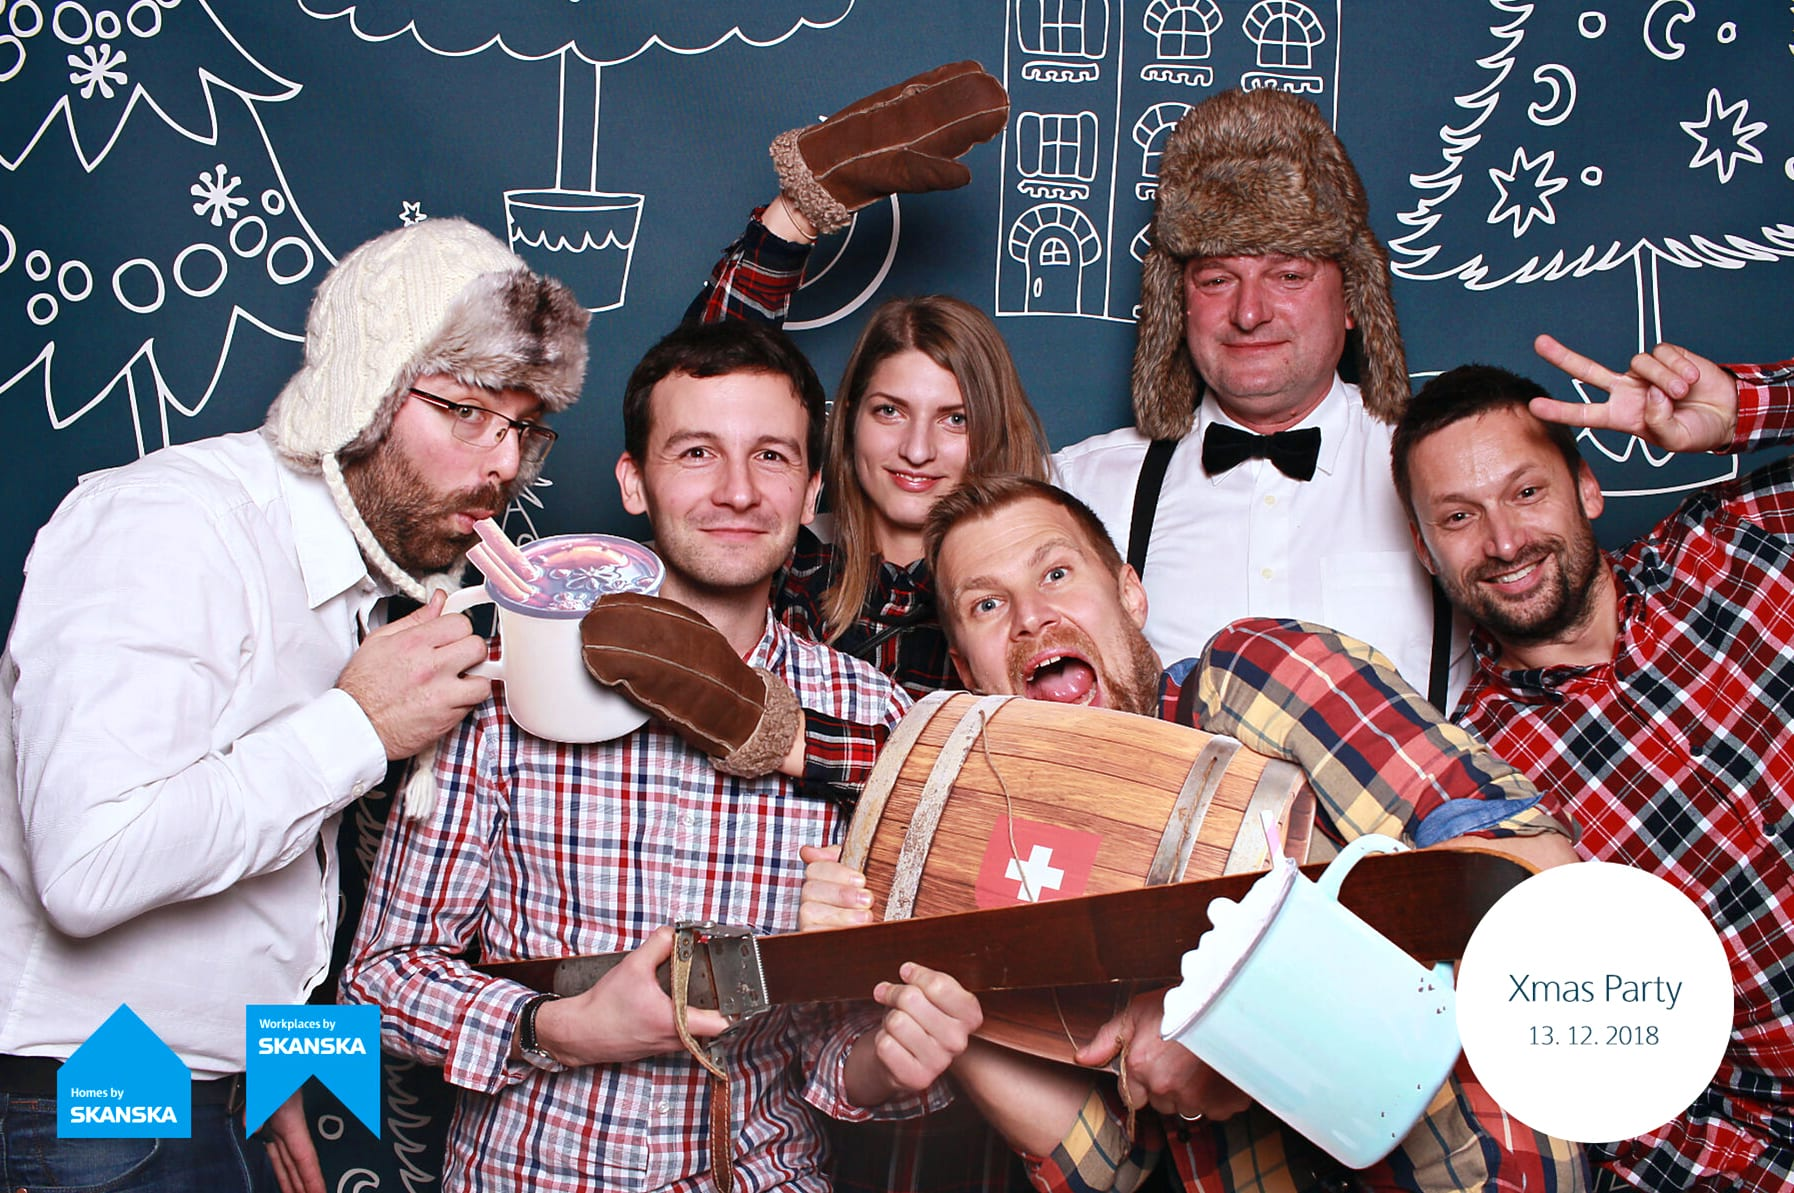 fotokoutek-skanska-xmas-party-13-12-2018-546358